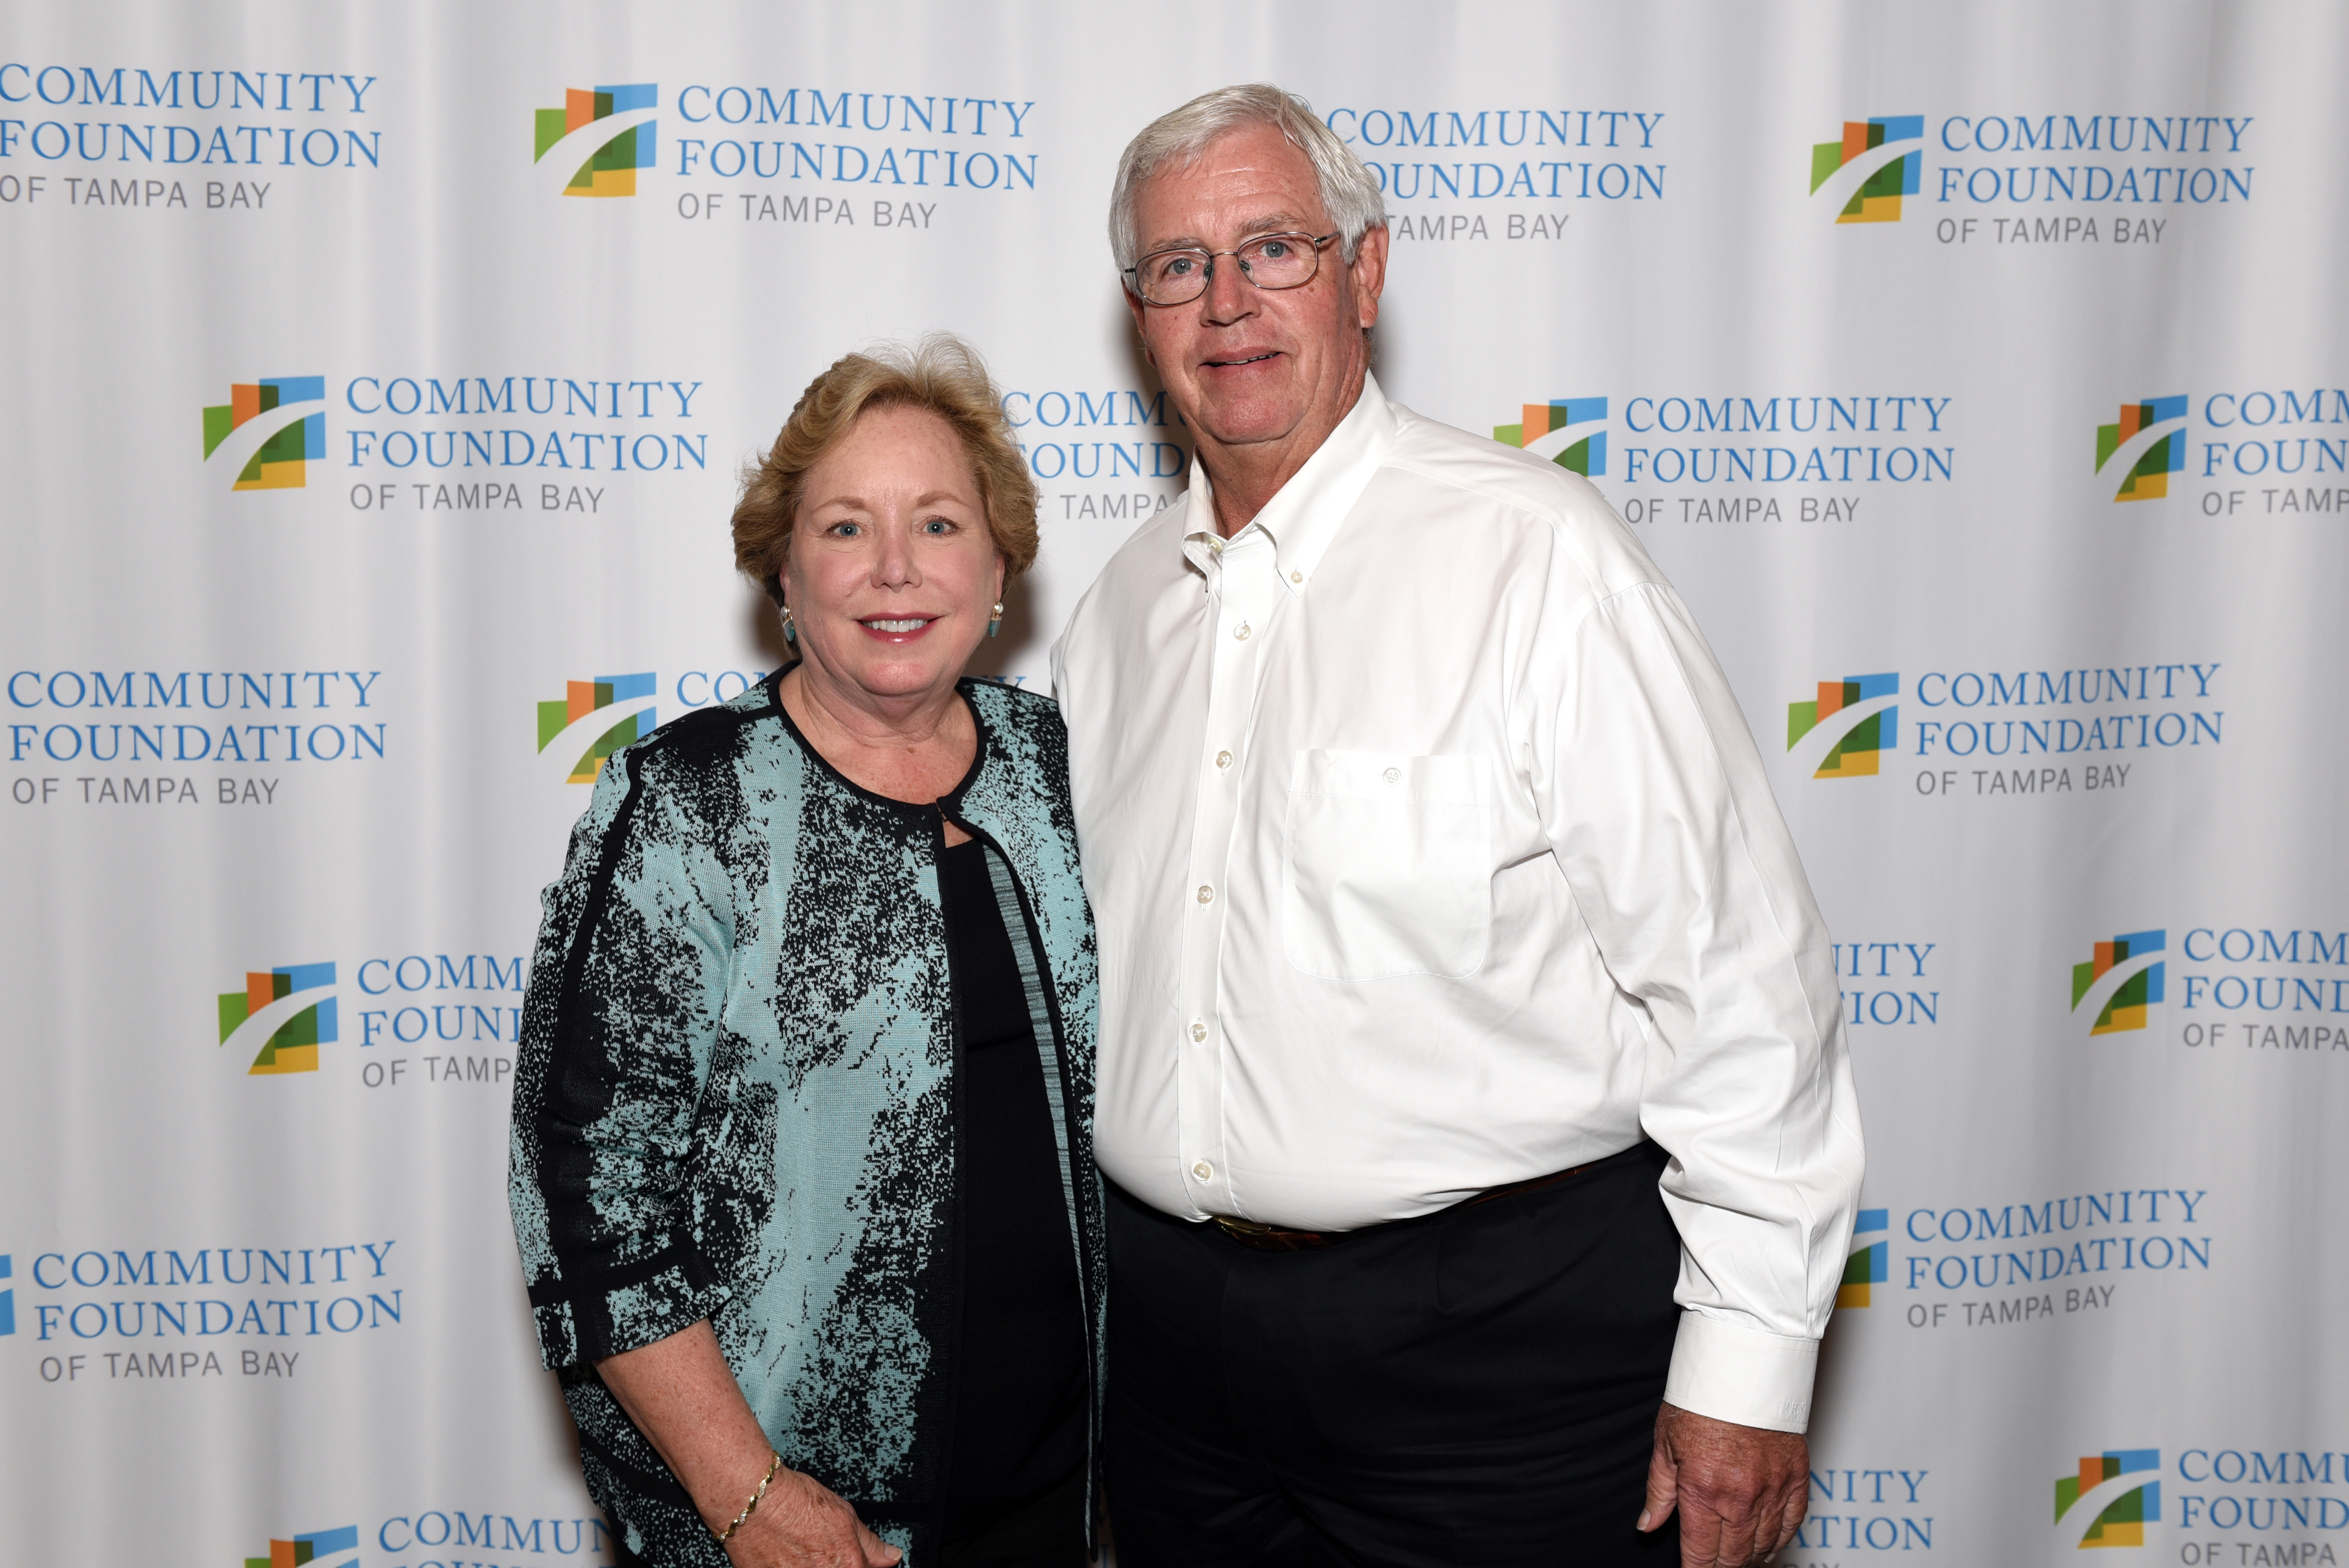 Board member Linda Simmons and Husband Randy